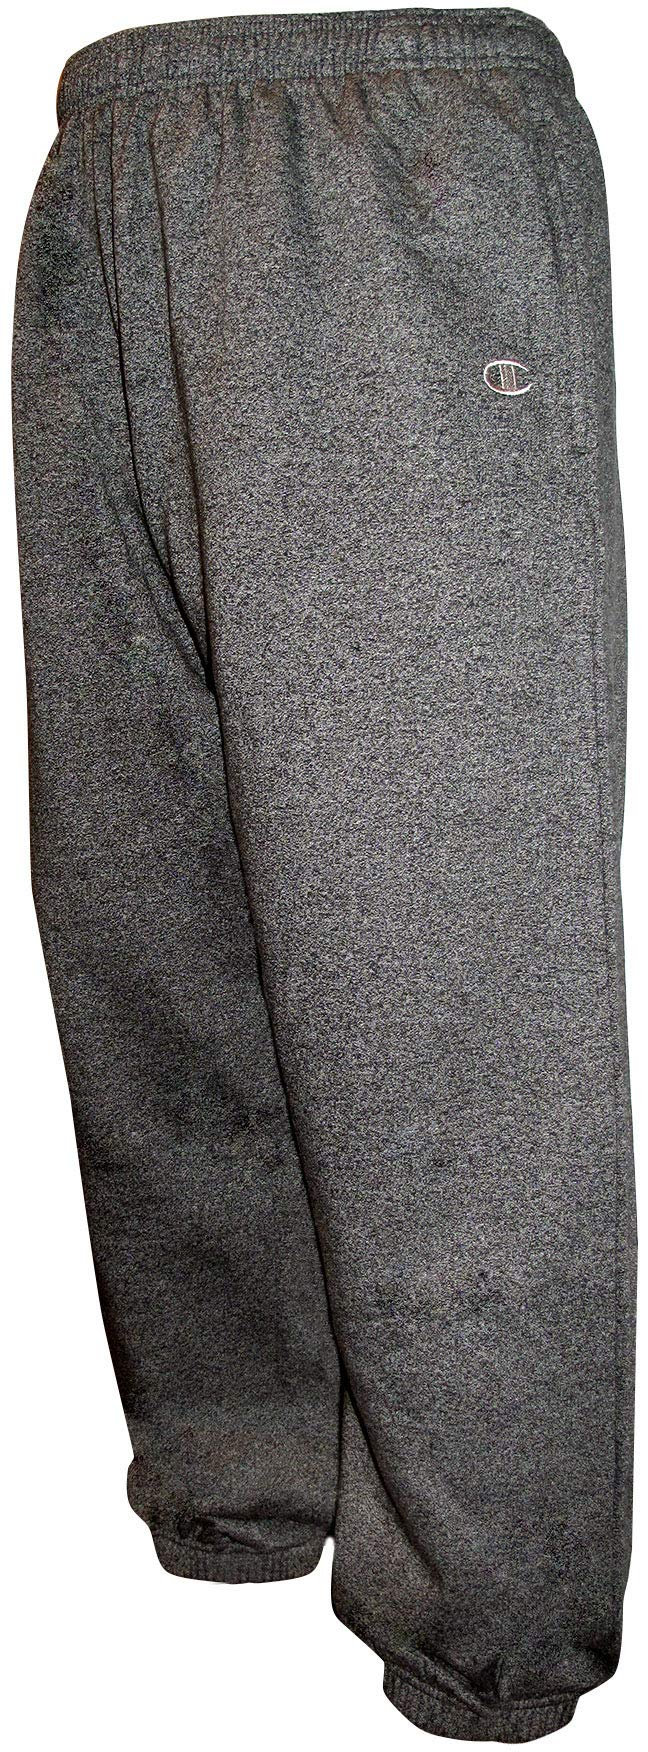 1738d5aac1e90 Champion Men's Big-Tall Fleece Sweatpants with Elastic Waistband and  Drawstring product image